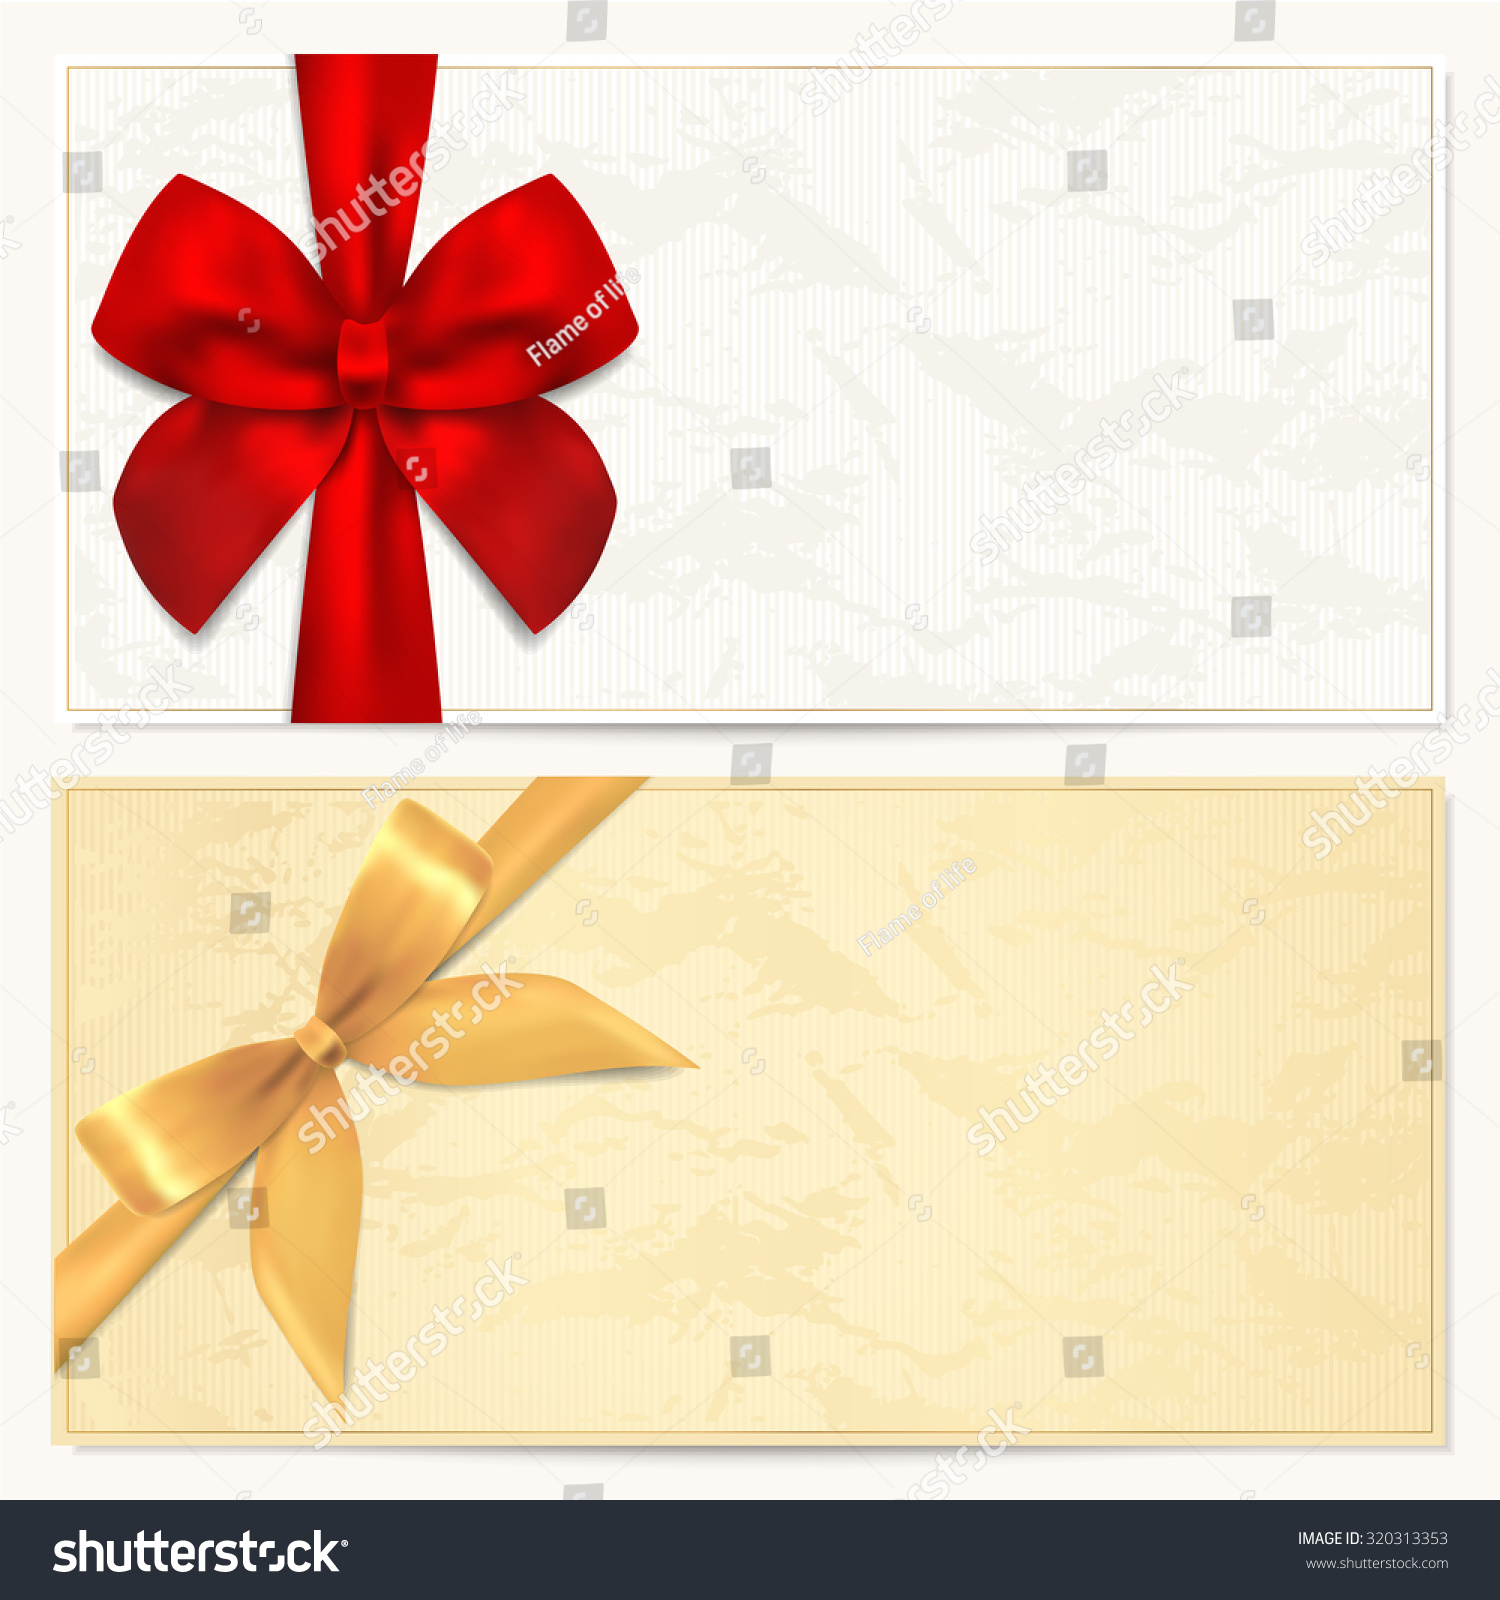 16 Coupon Templates U2013 Excel PDF Formats Free Gift Certificates. Choose A  Gift Certificate Template To Modify. Christmas Gift Certificate Templates:  Blank Voucher Template